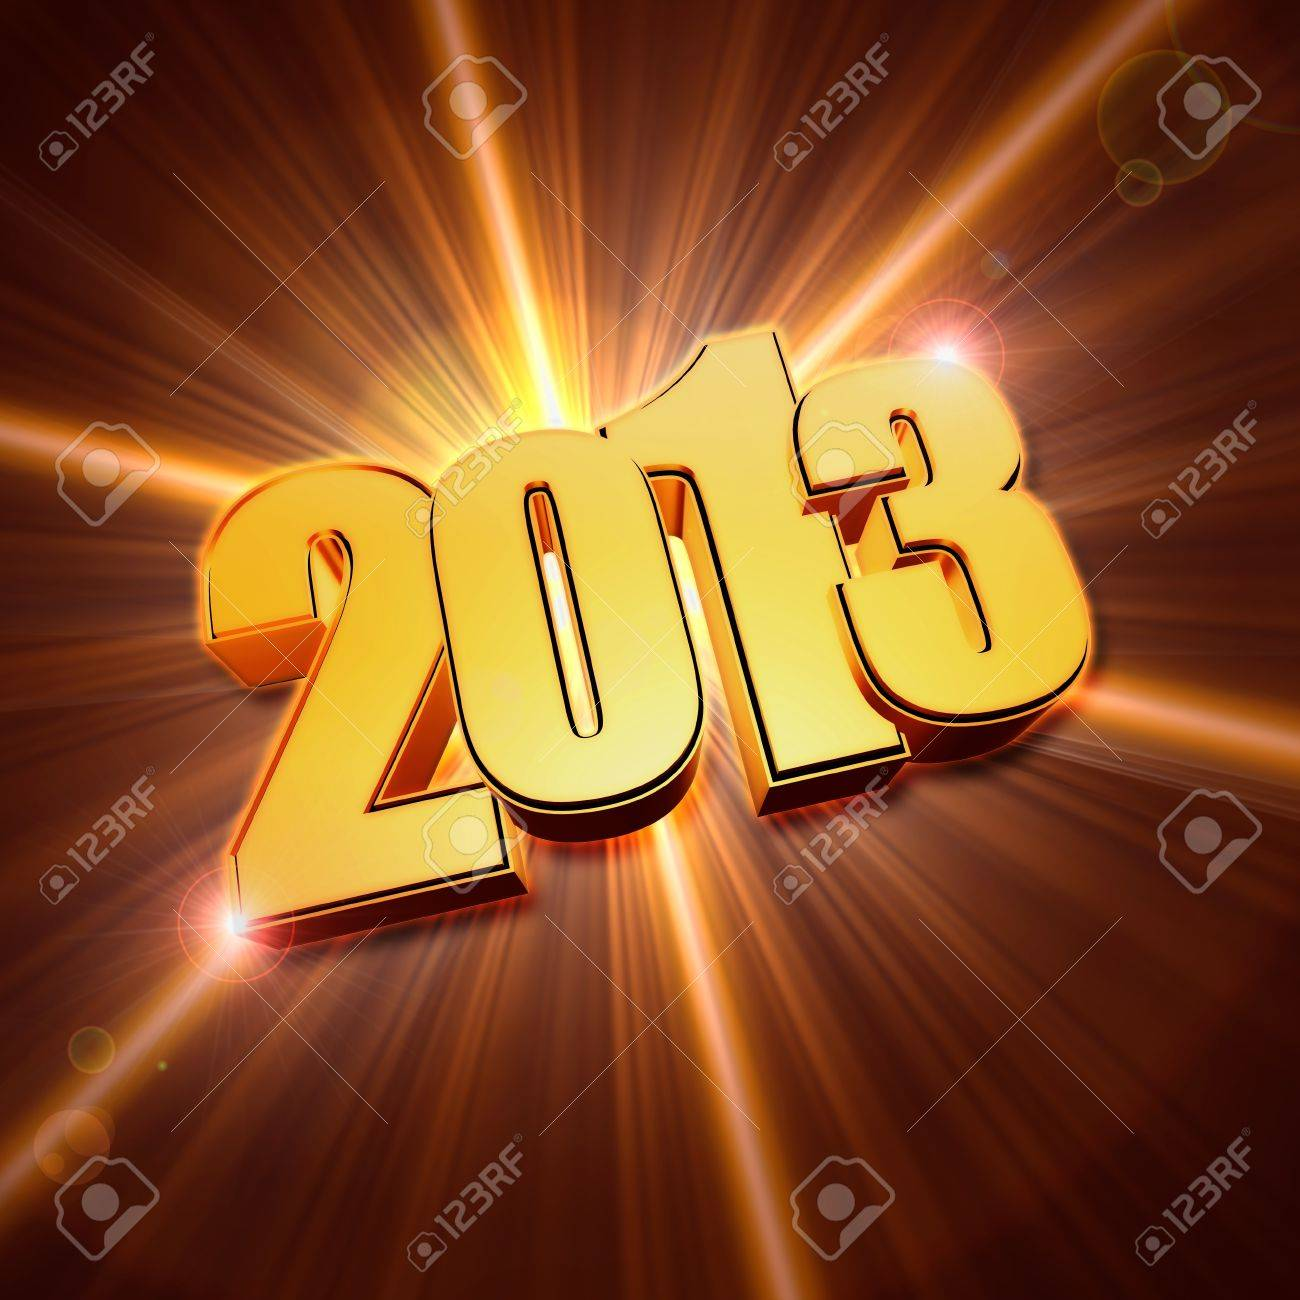 golden year 2013 with light rays over shining background with lens flare Stock Photo - 16519378